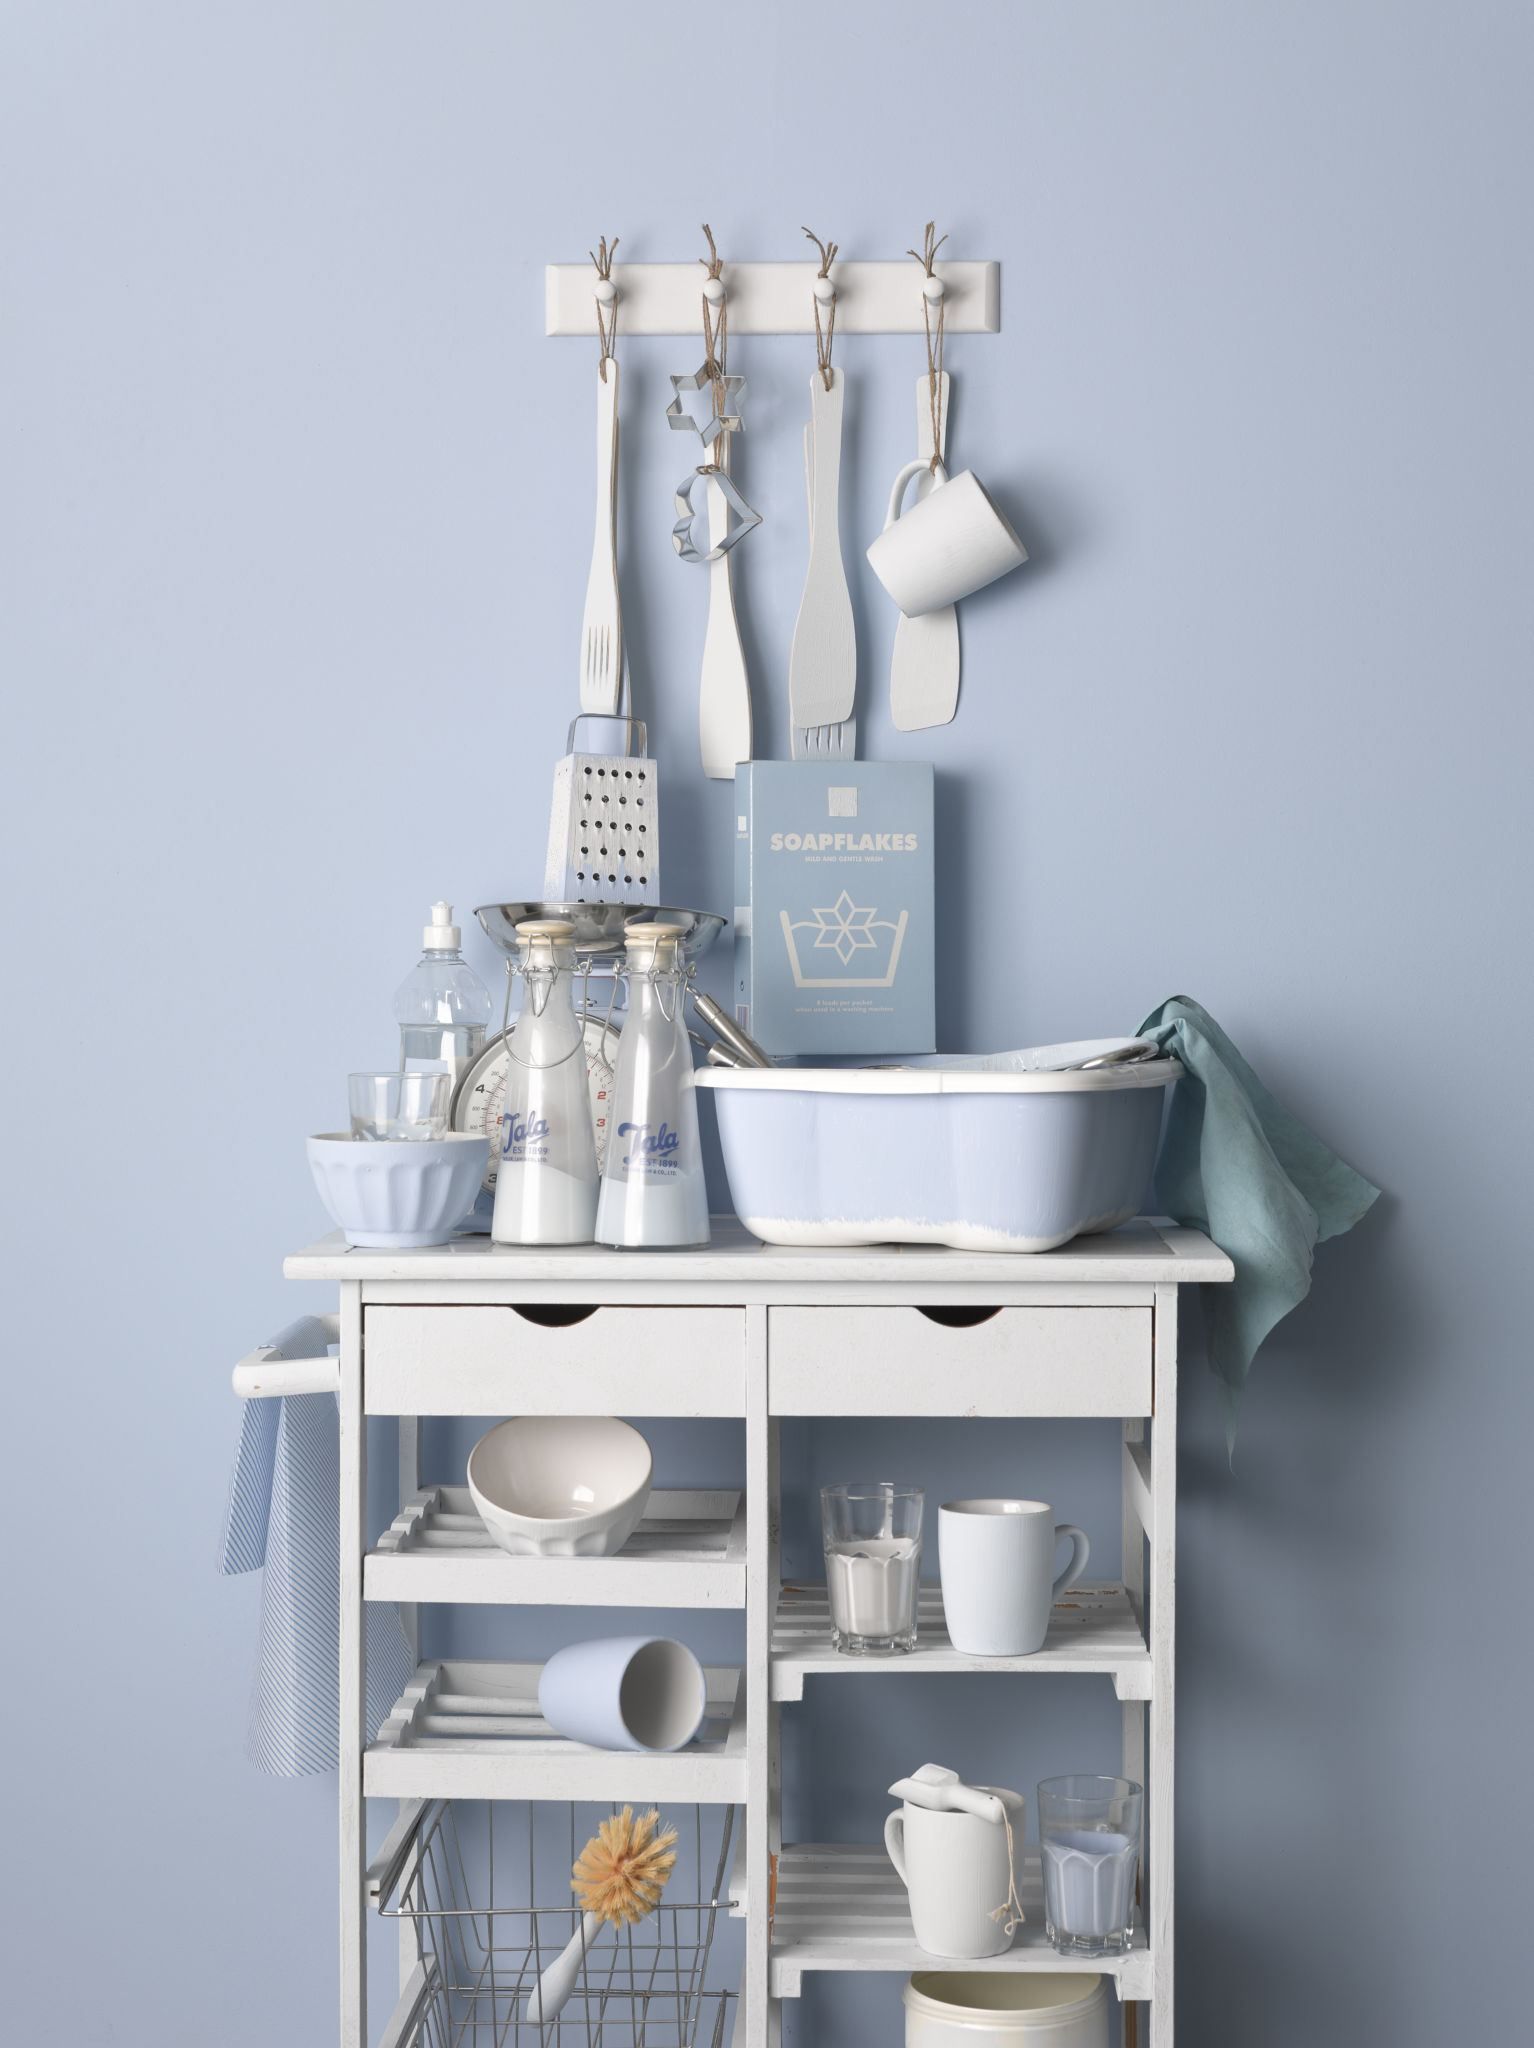 Earthborn New Colours 2013 Kitchen Sink (portrait High Res) Featuring Walls  In Gingham